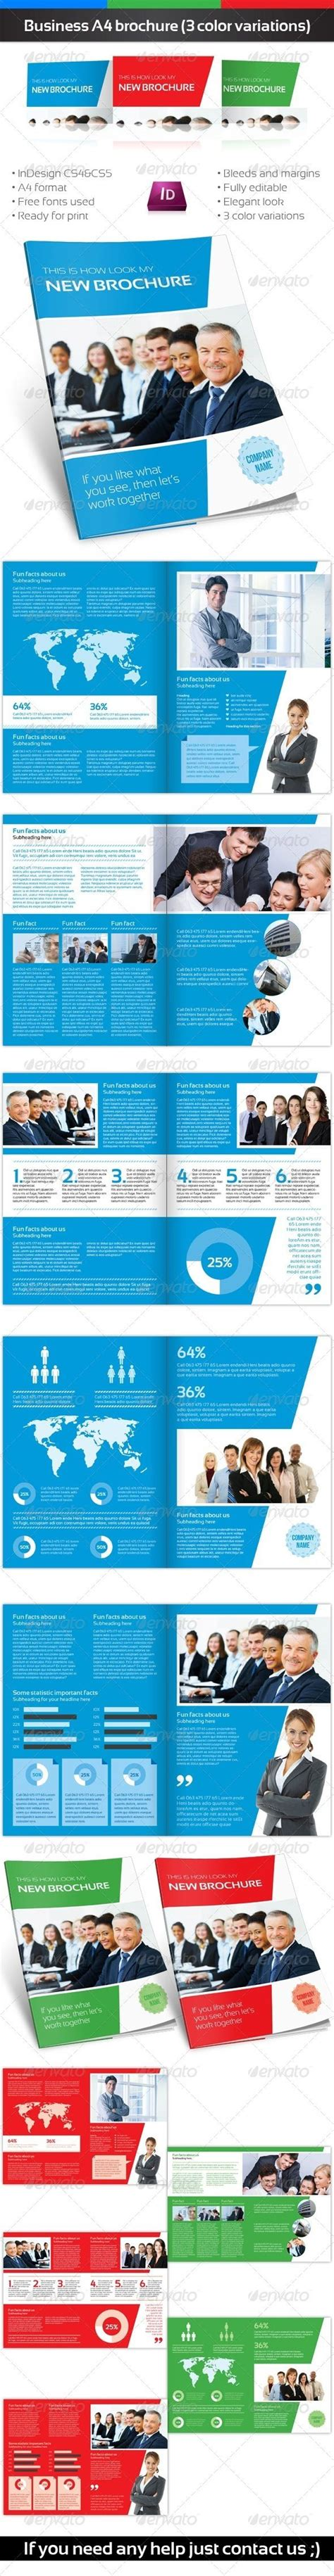 layout brochure indesign 193 best images about brochure design layout on